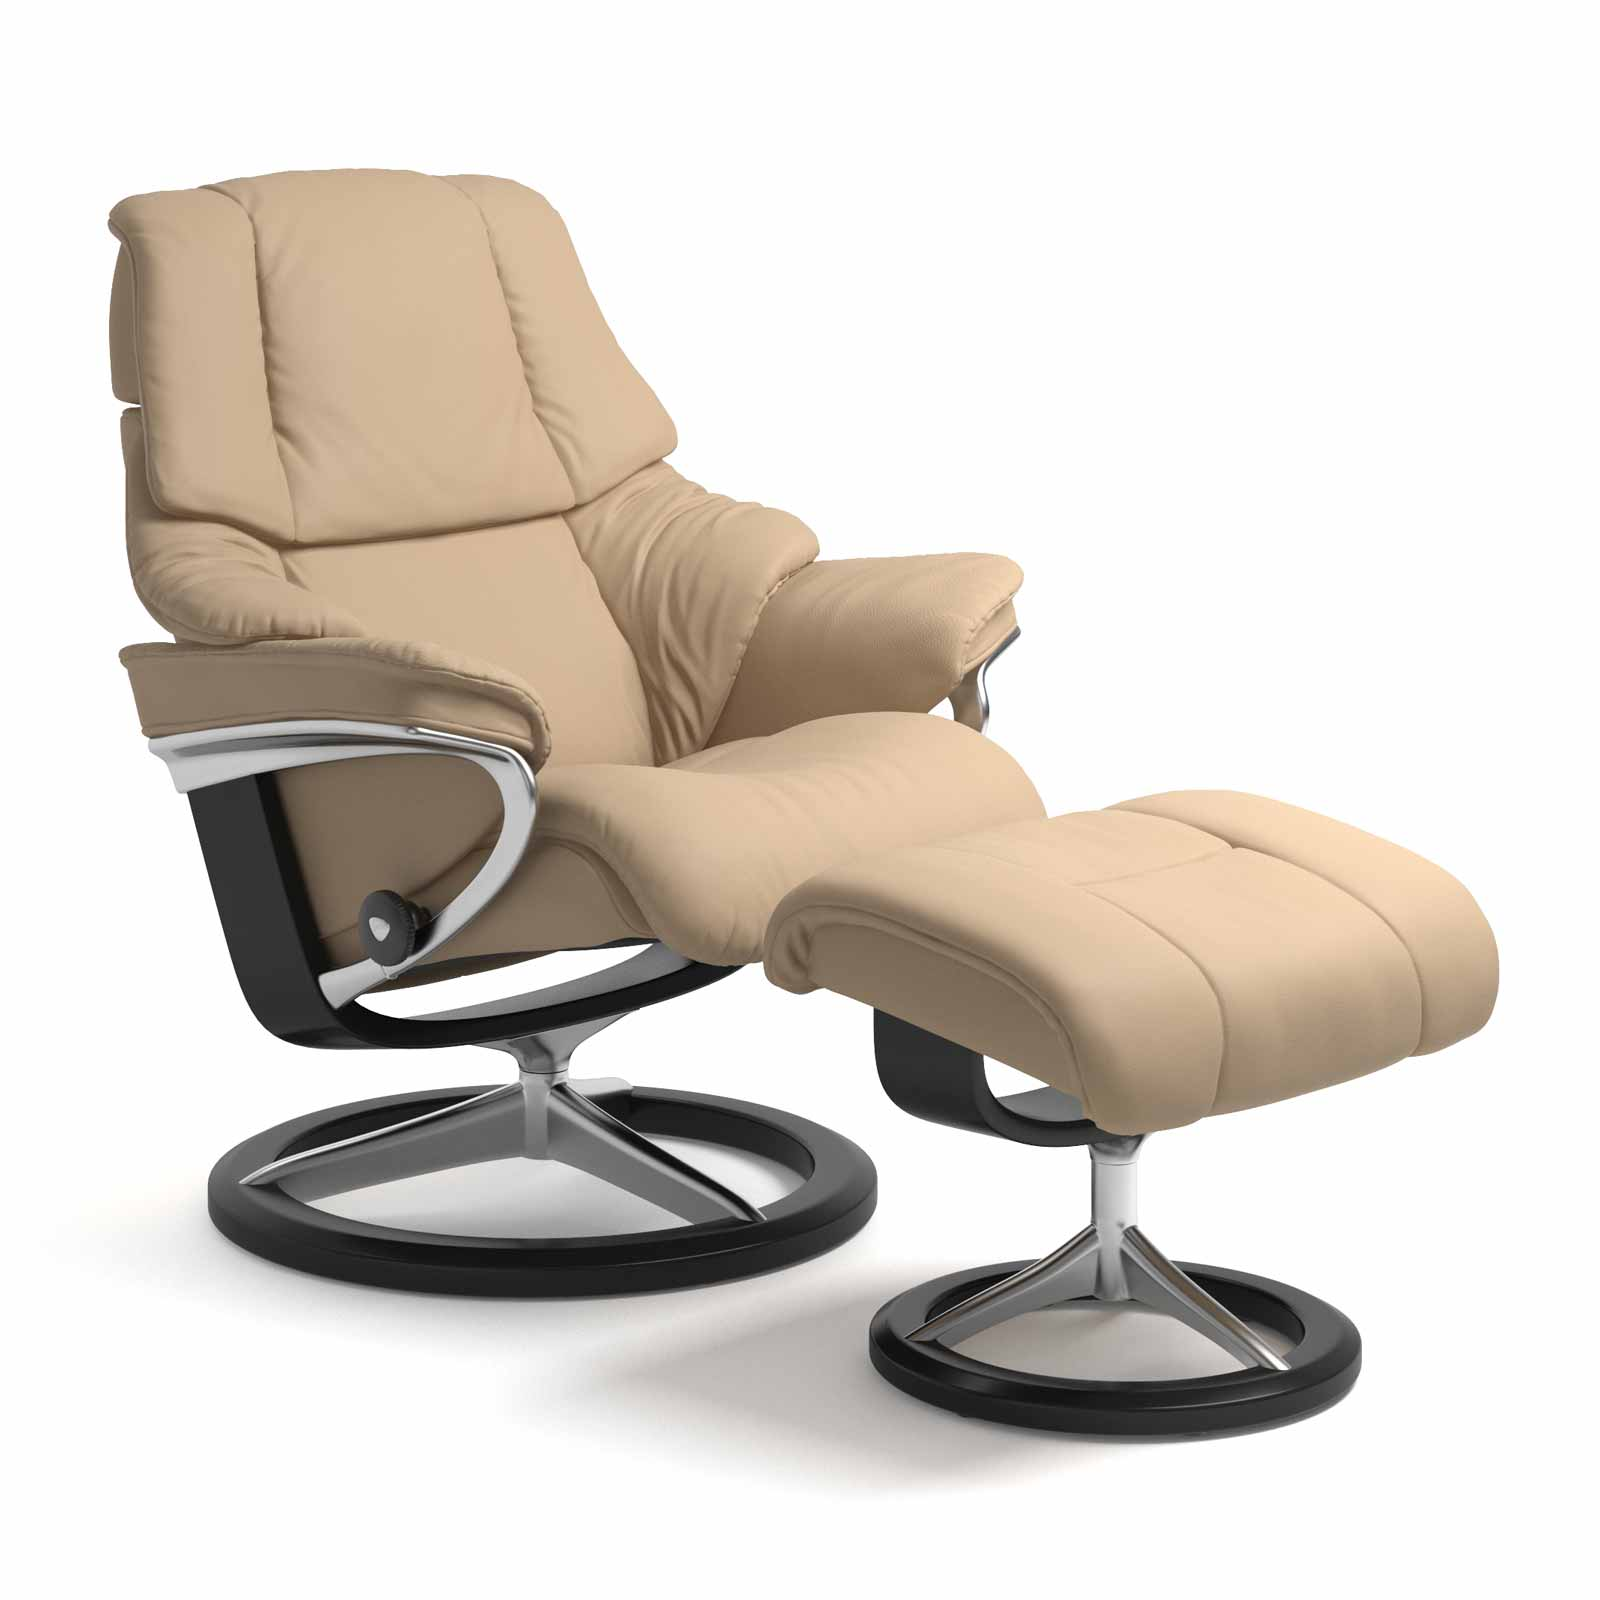 Stressless Sessel Reno Signature Paloma Beige Mit Hocker